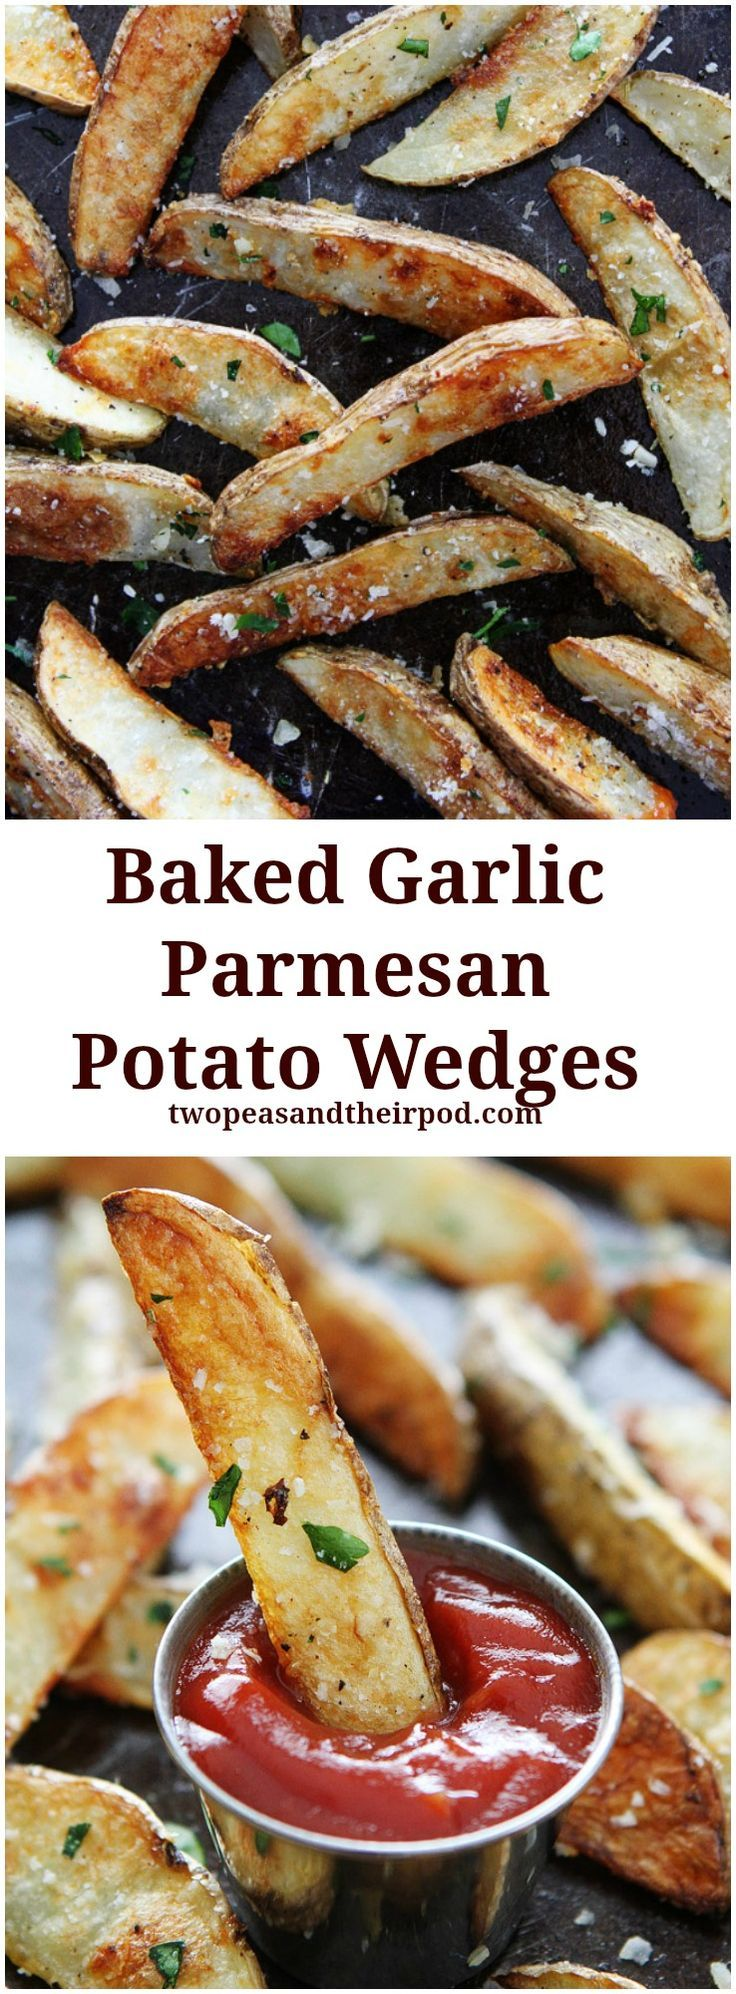 Baked Garlic Parmesan Potato Wedges Recipe on http://twopeasandtheirpod.com These are our favorite fries and they are so easy to make at home! Plus, you will never know they are baked and not fried!